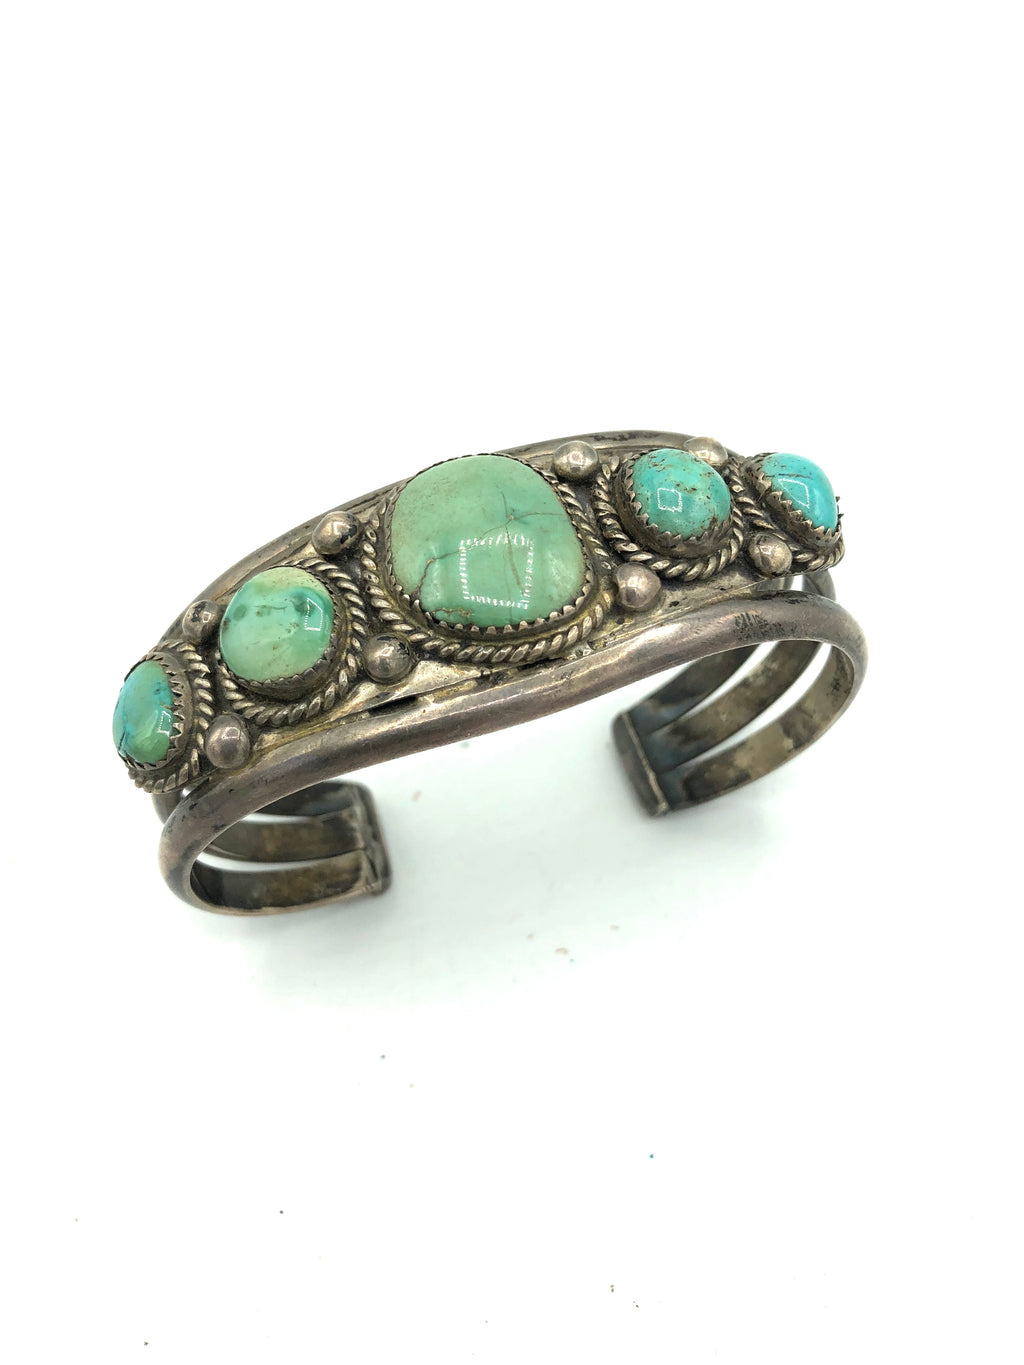 Native American Heavy Silver Cuff with Graduated Turquoise Stones 1 of 4